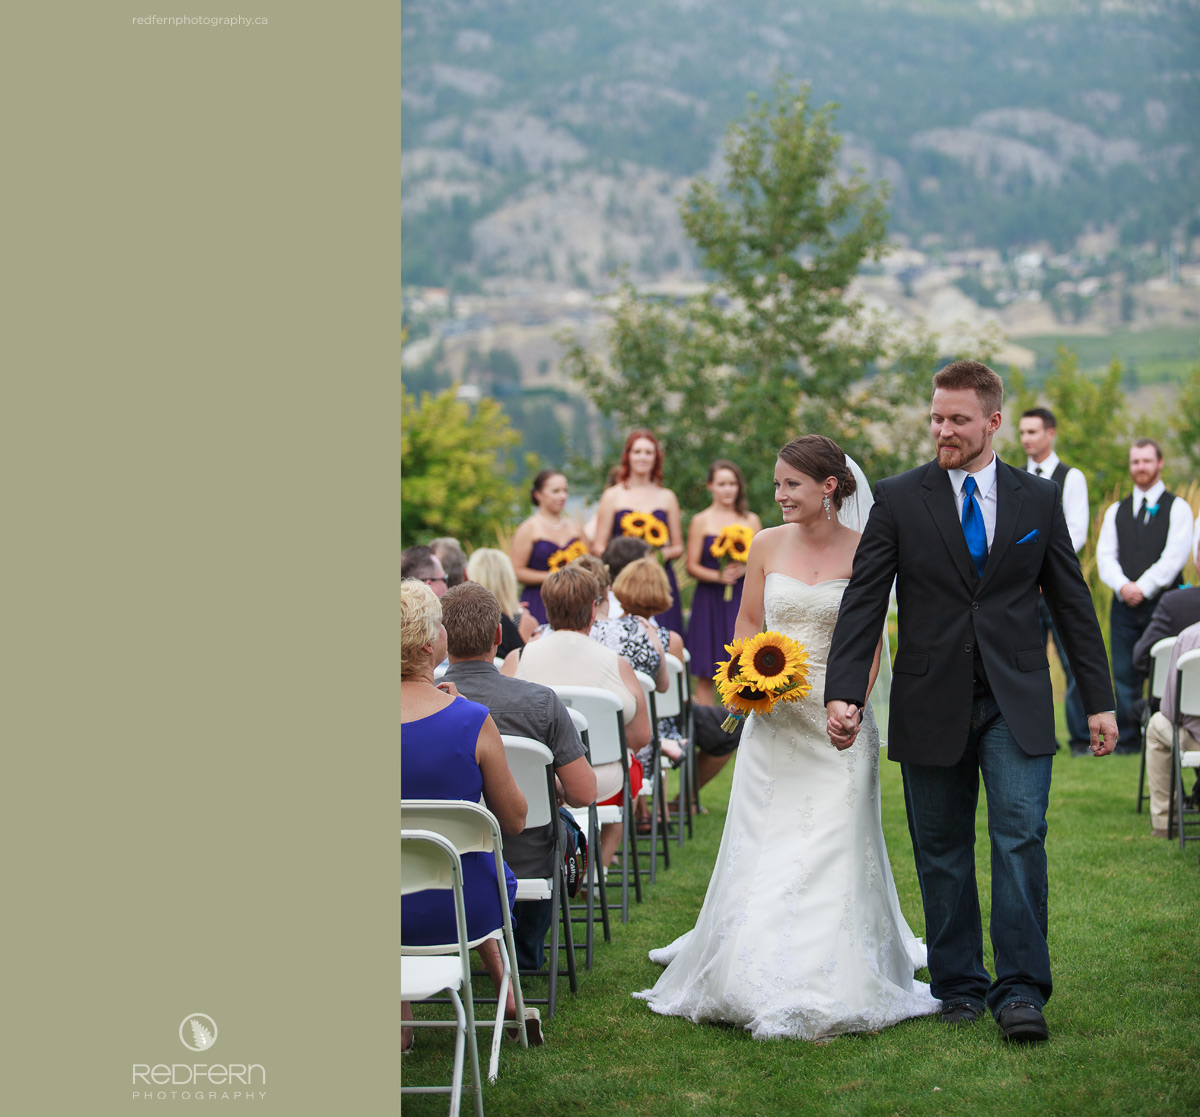 07_kaleden_hotel_ruins_1912_wedding_ceremony_outdoor_pictures